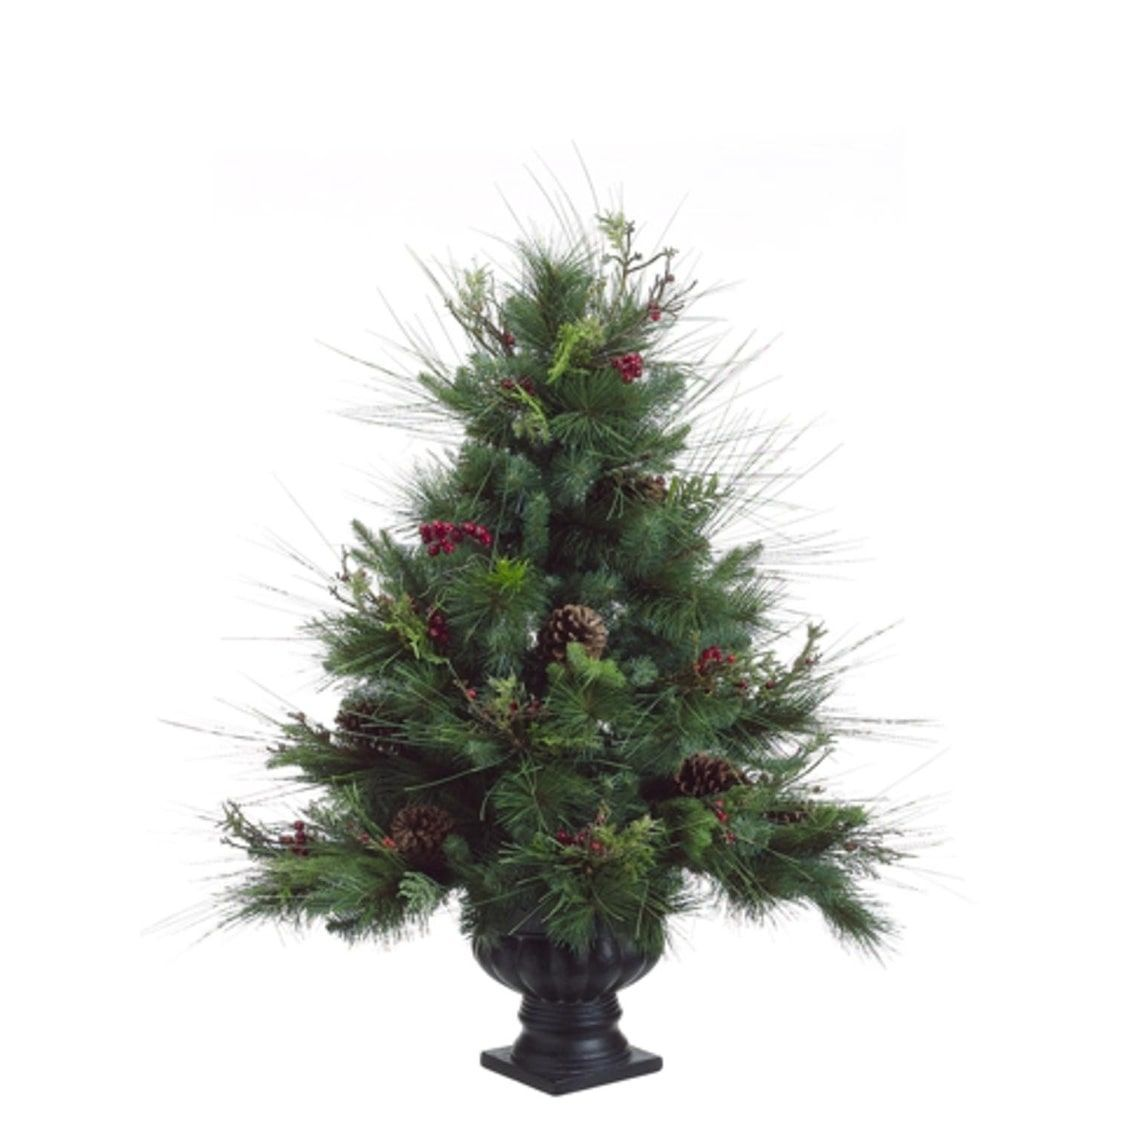 3 Potted Pine Artificial Christmas Tree With Pine Cones And Berries Unlit Green Allstate Pvc Pine Cone Christmas Tree Potted Christmas Trees Christmas Tree